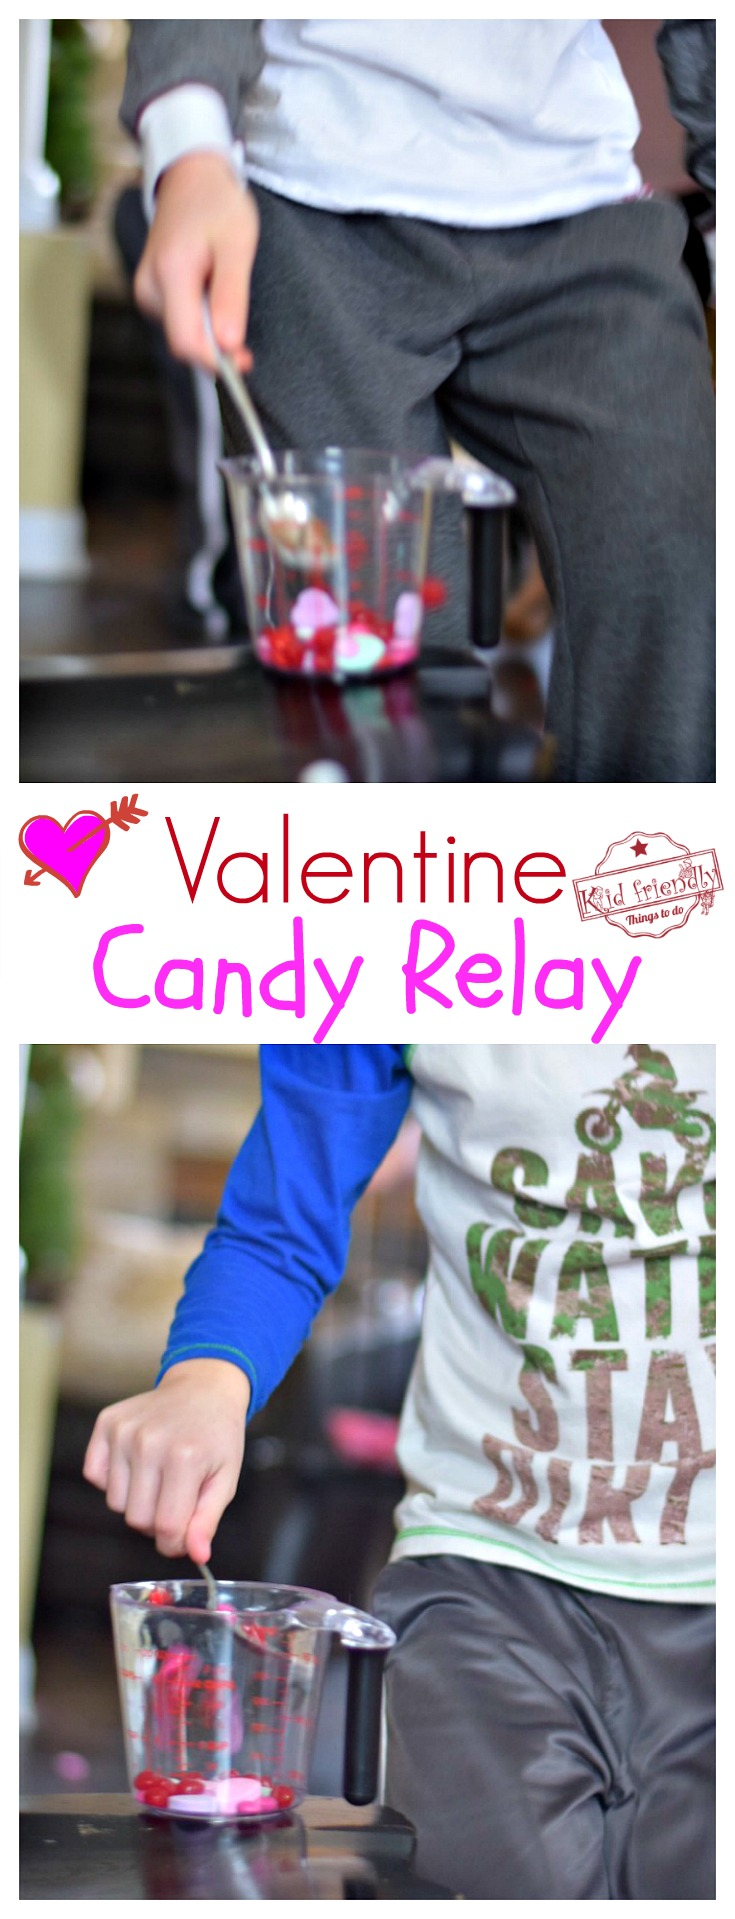 A Valentine Candy Relay Race - A Fun Game for Valentine's Day Parties! - Perfect for Family Game Night, Teens, School and even preschool - When in doubt...go with the classics. The kids always love them! www.kidfriendlythingstodo.com